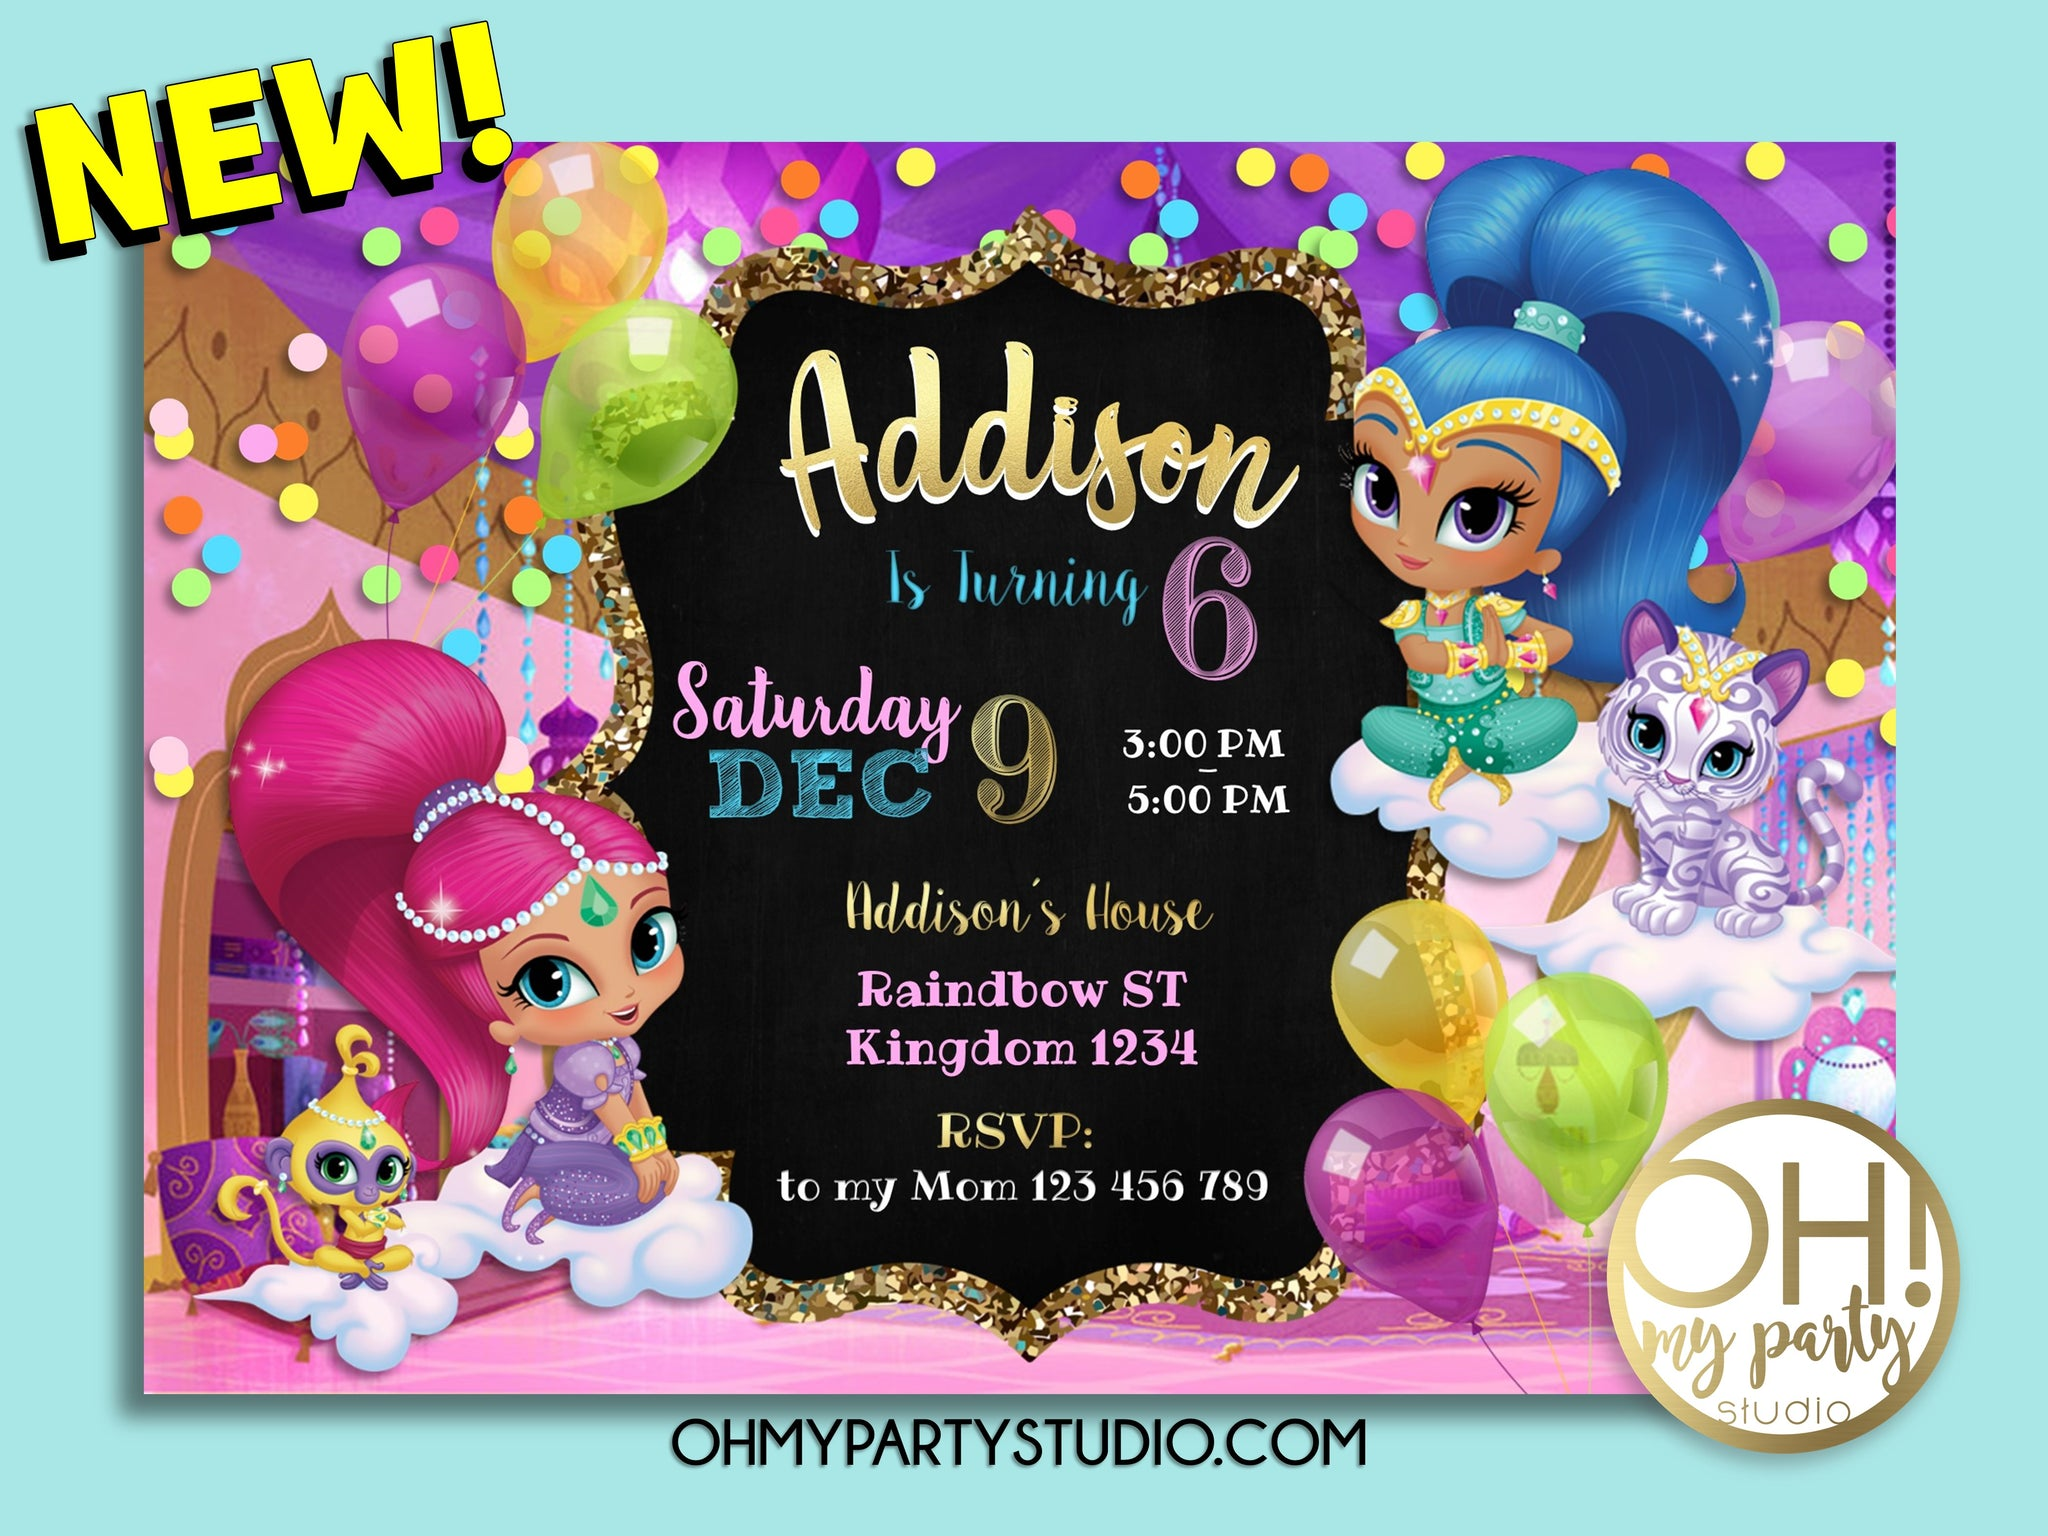 SHIMMER AND SHINE BIRTHDAY PARTY INVITATION, SHIMMER AND SHINE  BIRTHDAY, SHIMMER AND SHINE PARTY, SHIMMER AND SHINE  INVITATION, SHIMMER AND SHINE  INVITATIONS, SHIMMER AND SHINE  CARD, SHIMMER AND SHINE  DIGITAL INVITATION, SHIMMER AND SHINE  BIRTHDAY PARTY, SHIMMER AND SHINE  PARTY PRINTABLES, SHIMMER AND SHINE INVITACIÓN